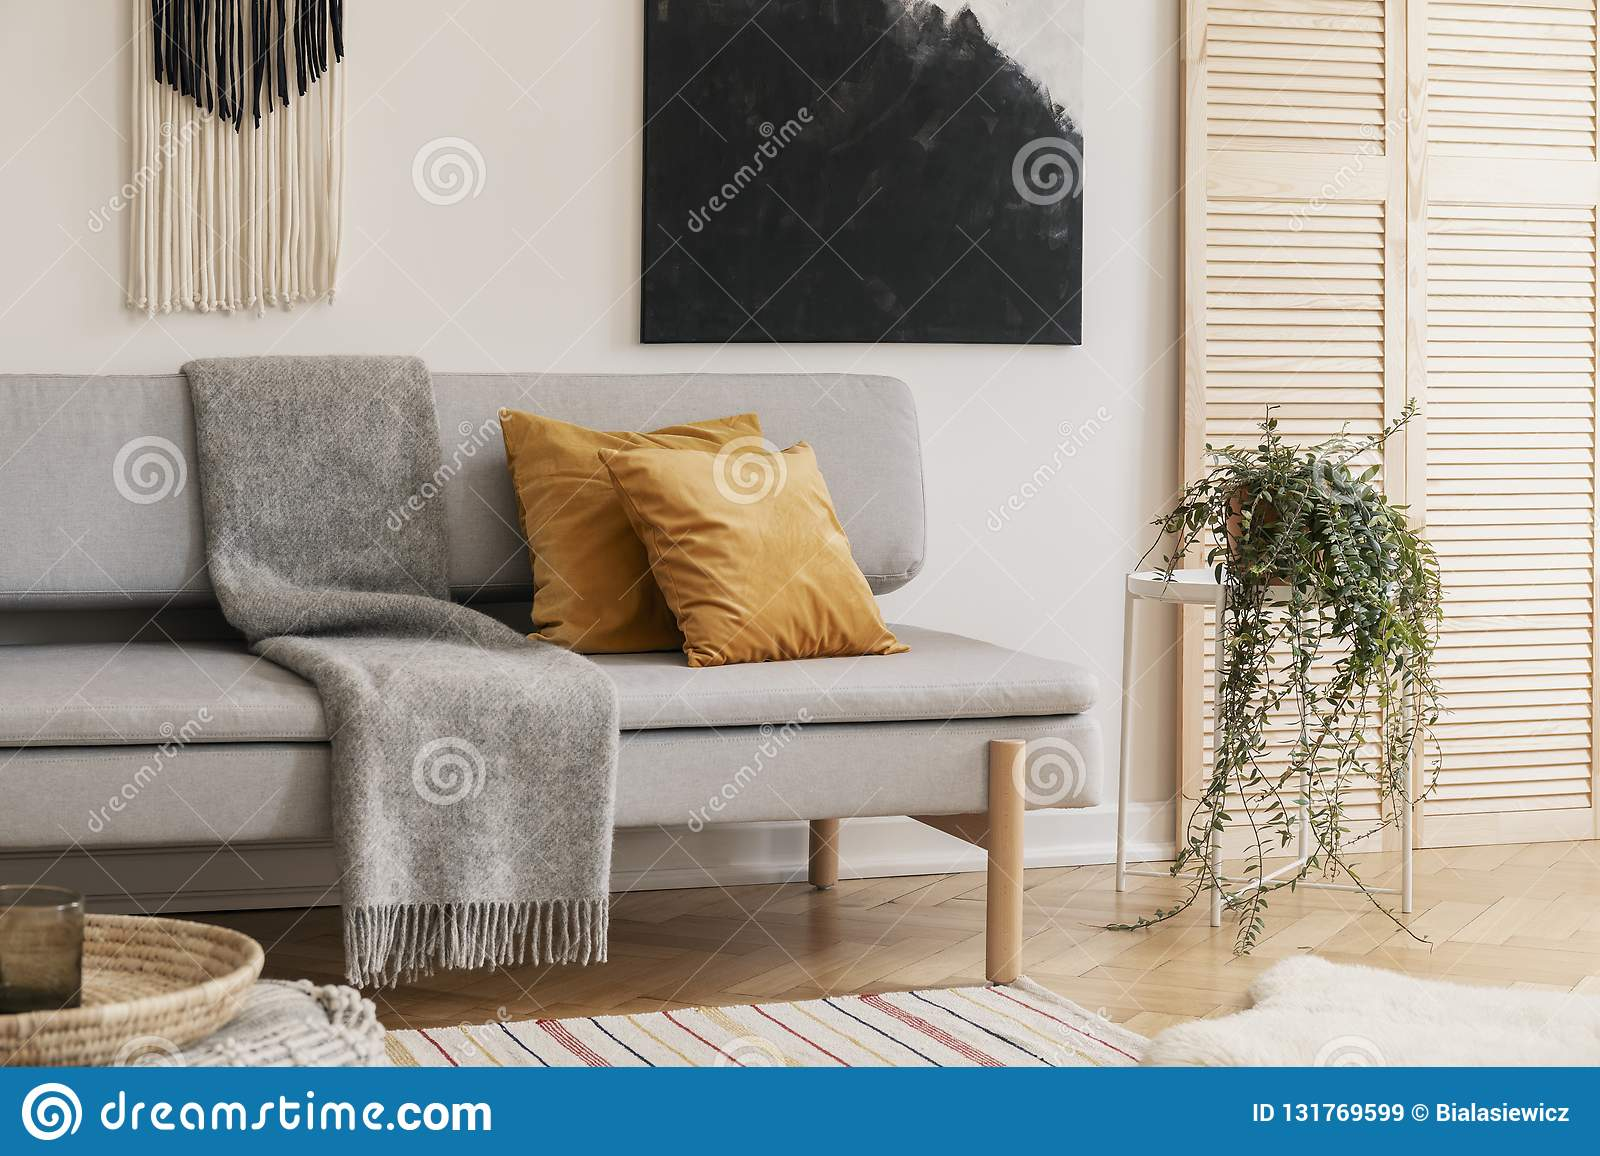 Pleasing Brown Pillows And Grey Blanket On Couch In Living Room Stock Cjindustries Chair Design For Home Cjindustriesco